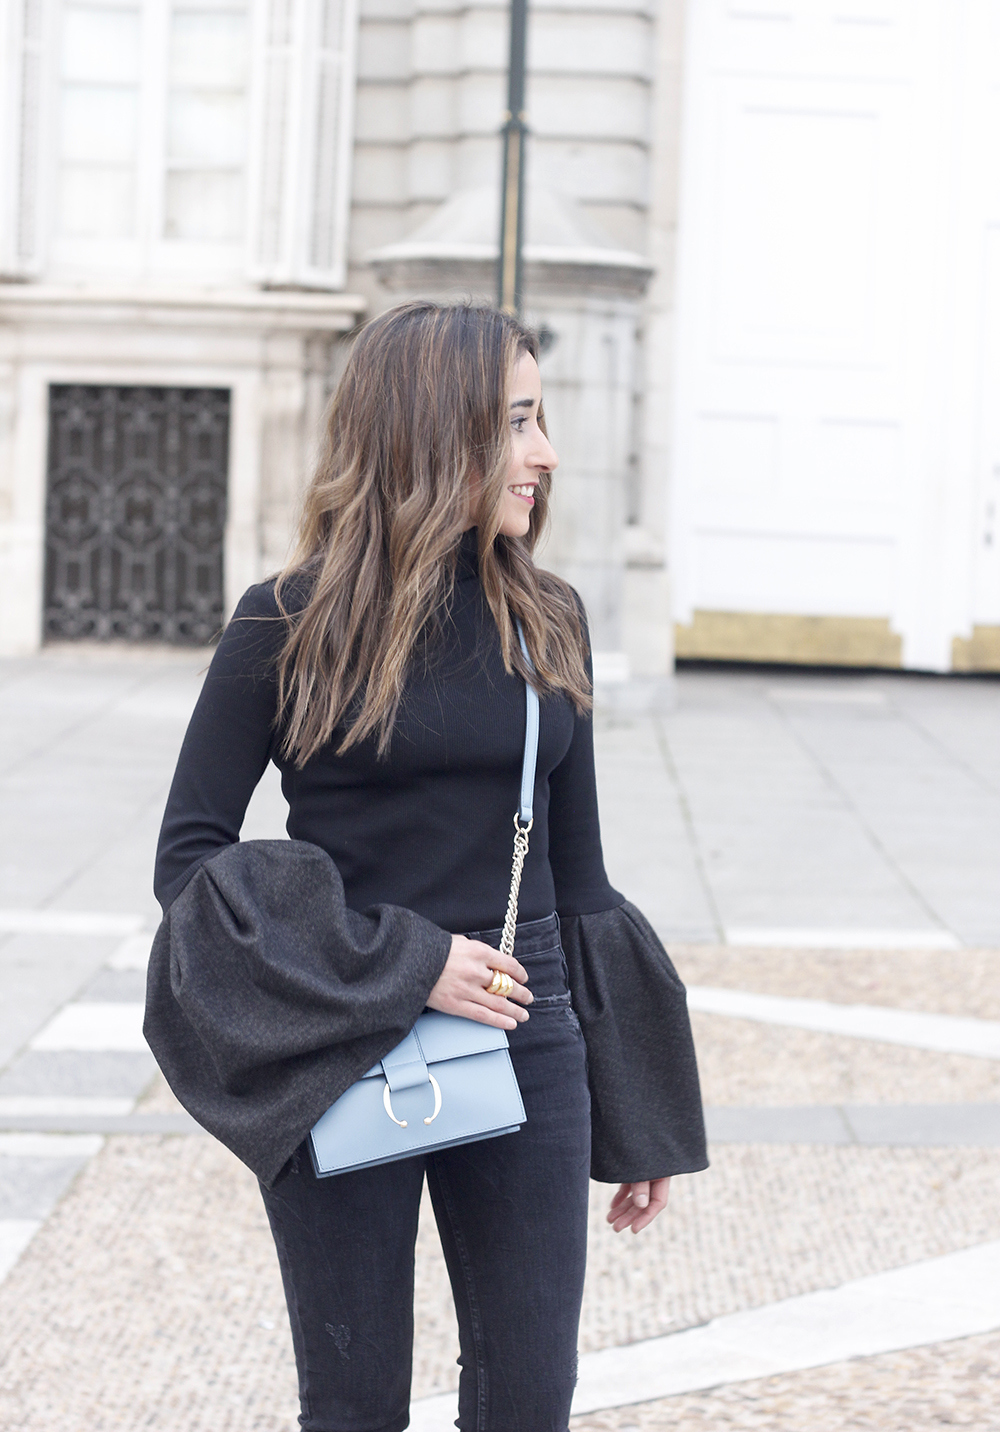 Black sweater with bell sleeves black jeans heels uterqüe bag palacio real madrid street style fashion outfit17